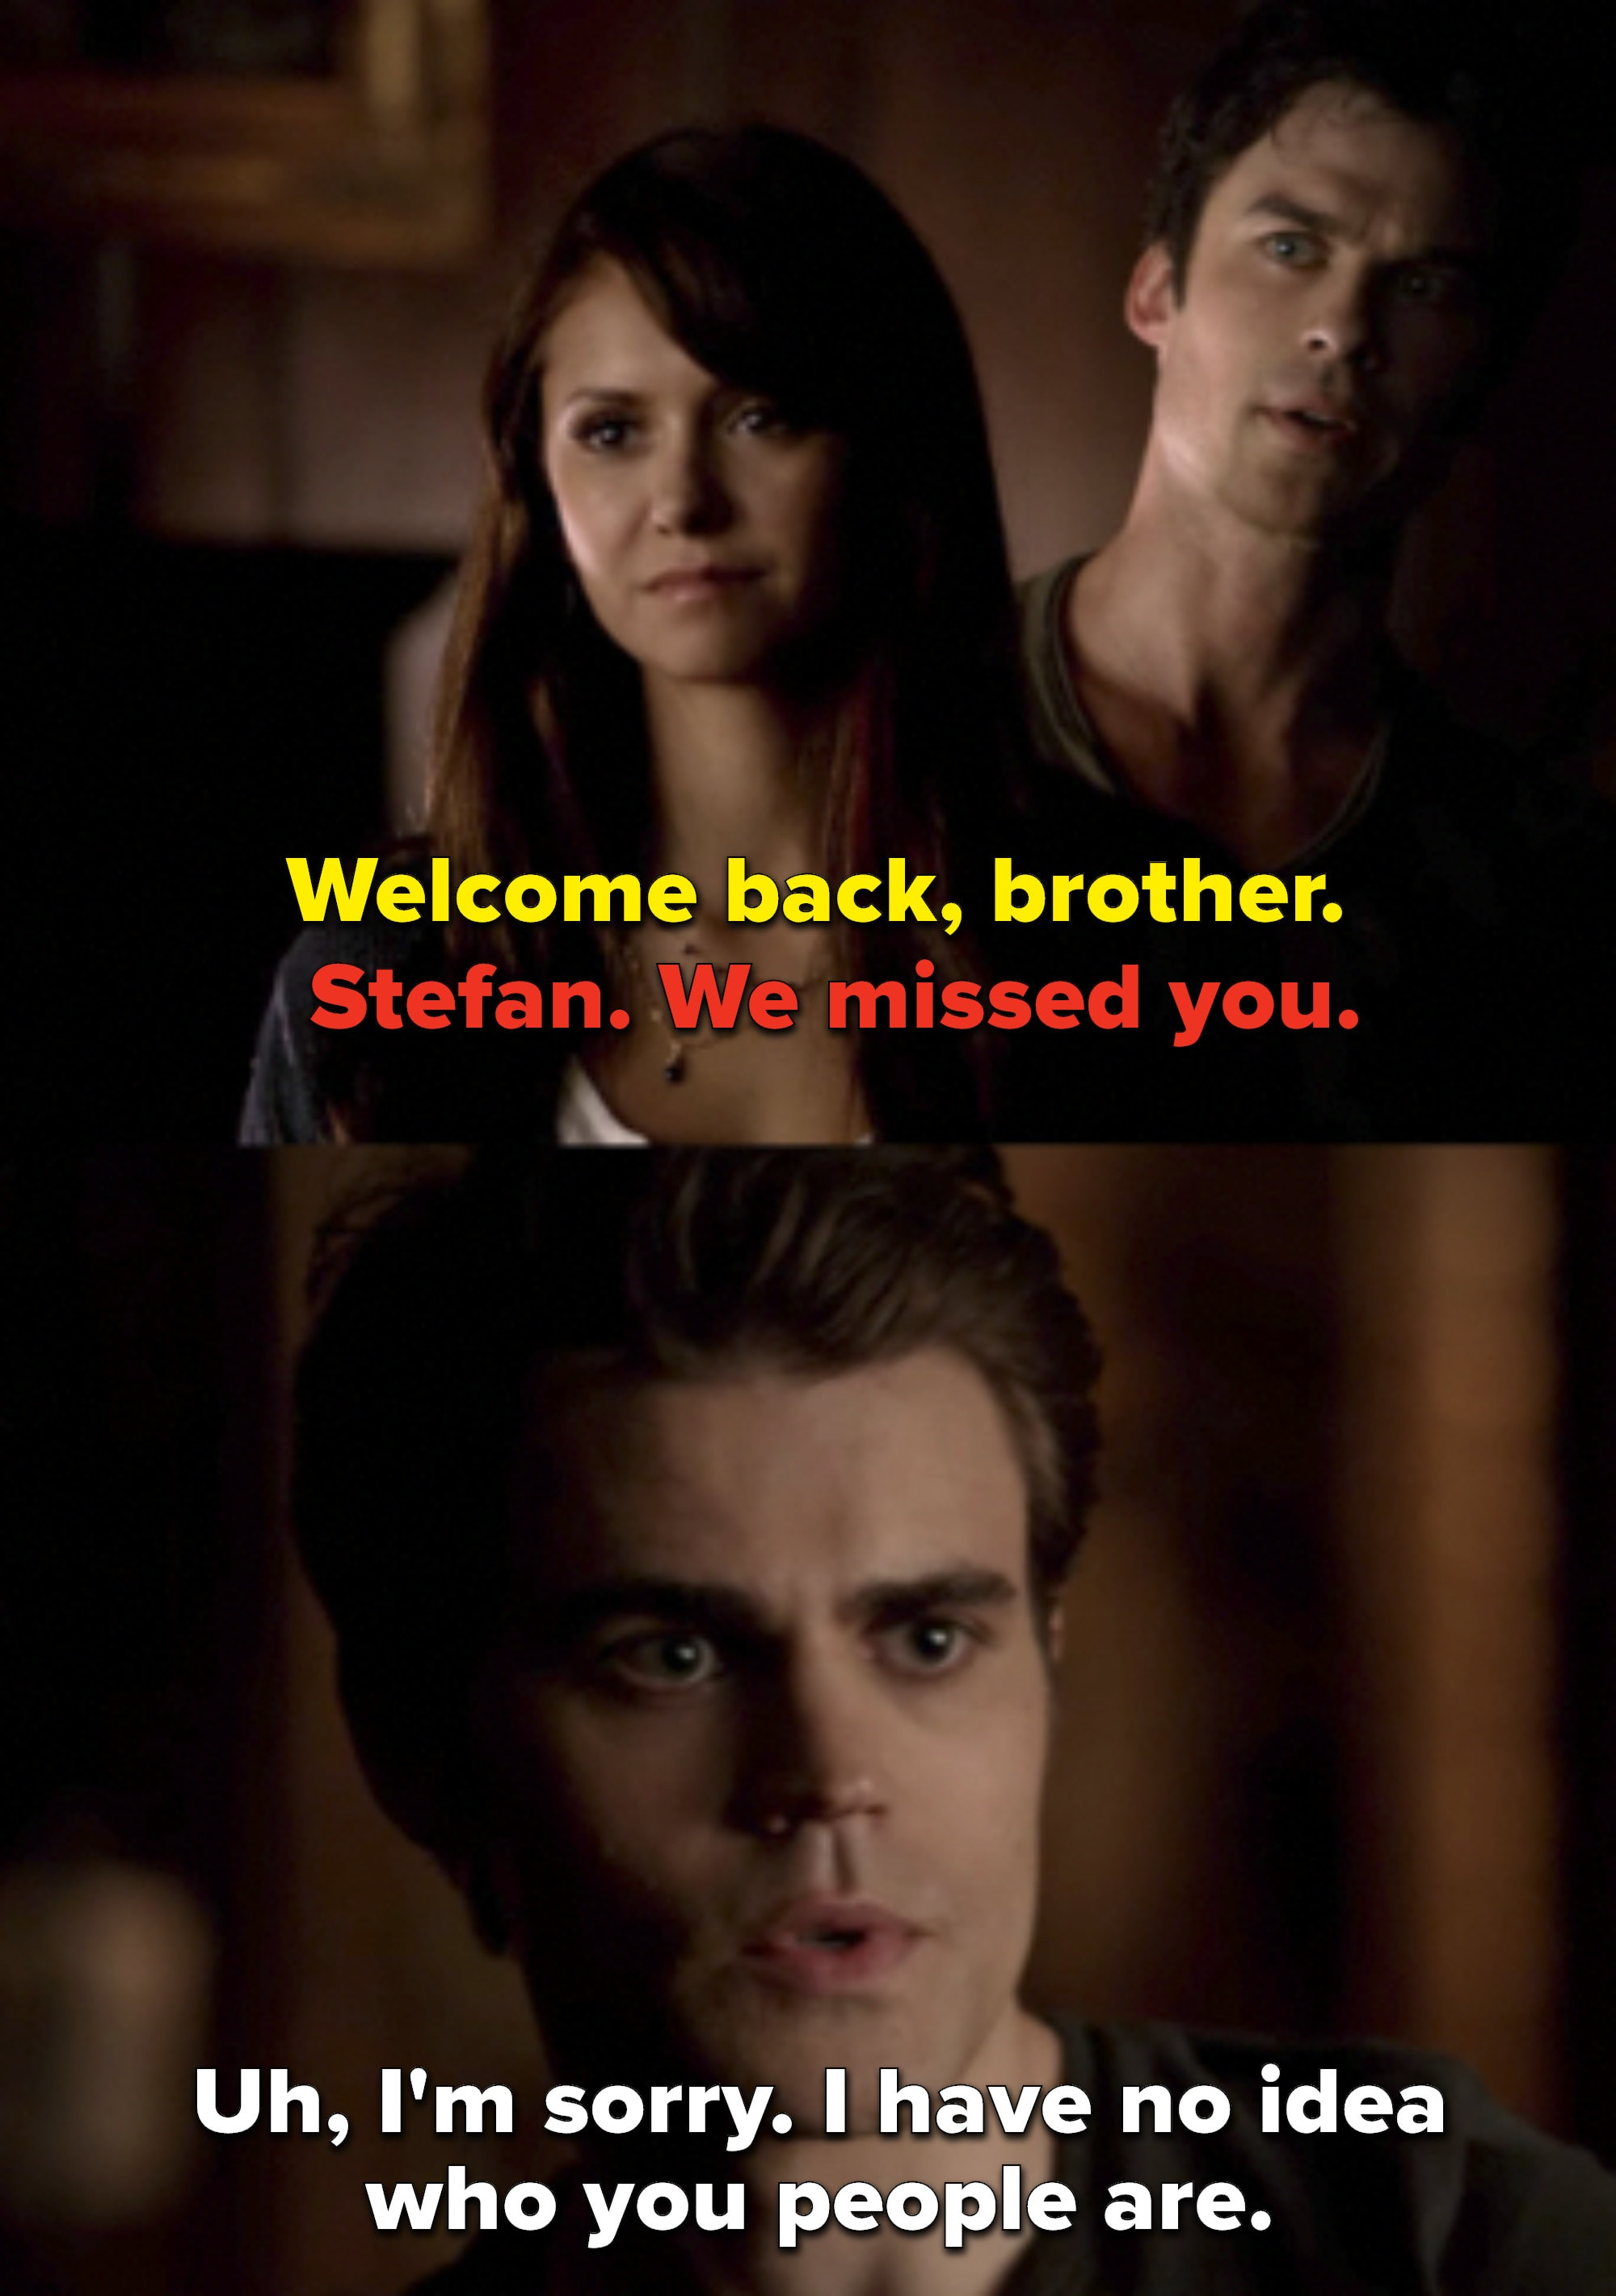 """Damon says """"Welcome back, brother"""" and Elena says """"Stefan, we missed you,"""" and Stefan replies he has no idea who they are"""